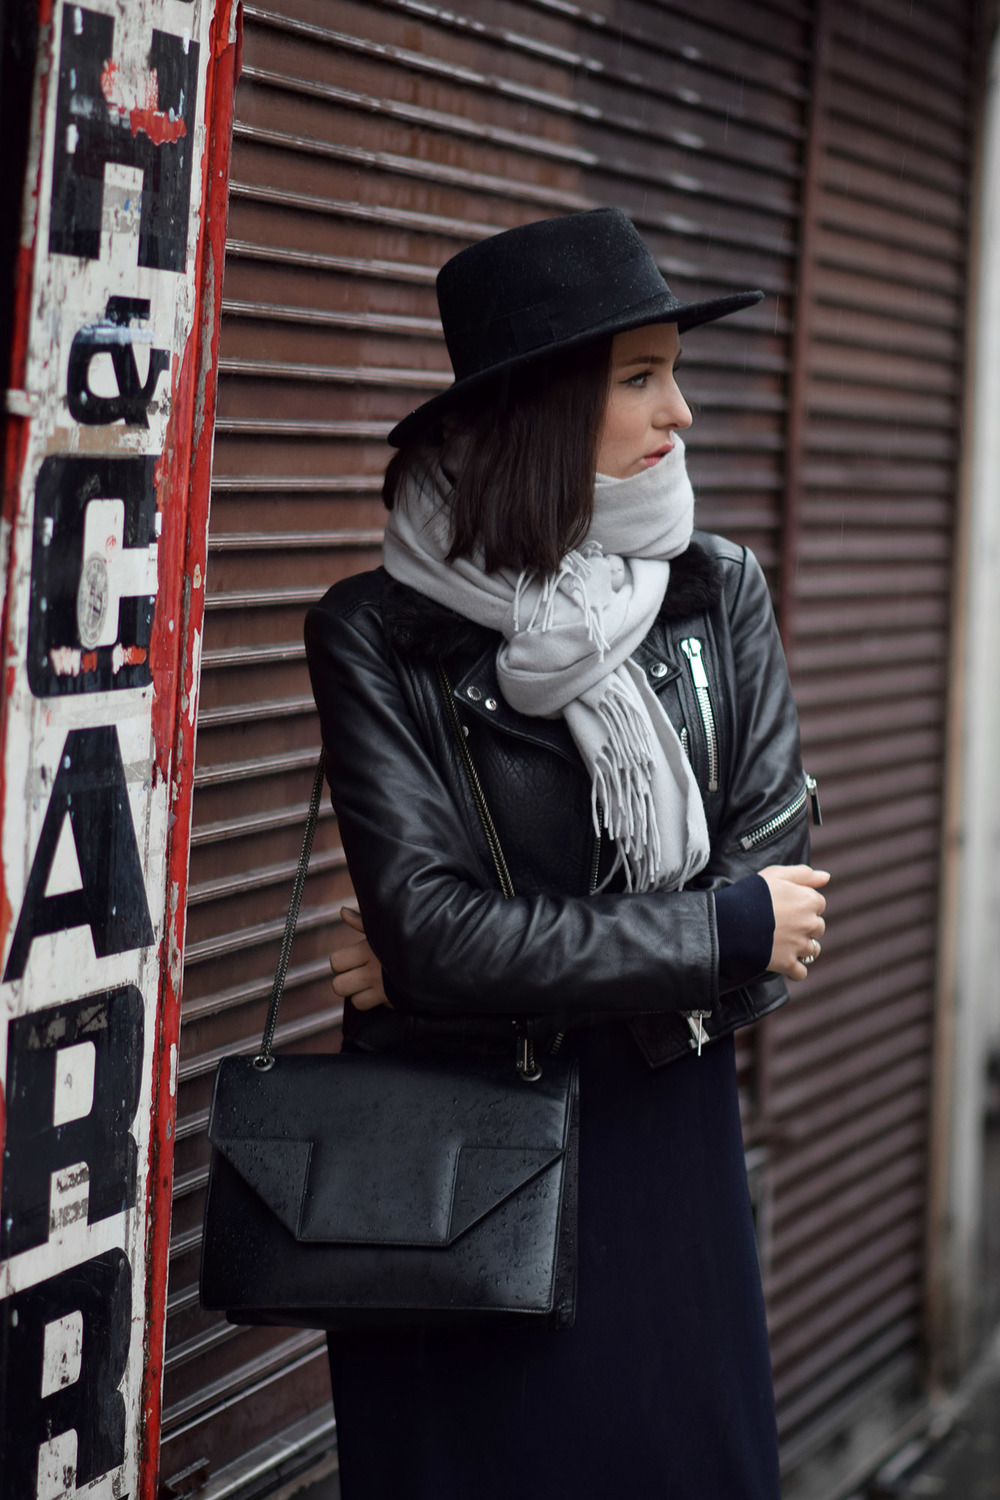 Saint Laurent betty bag on fashion blogger winter style